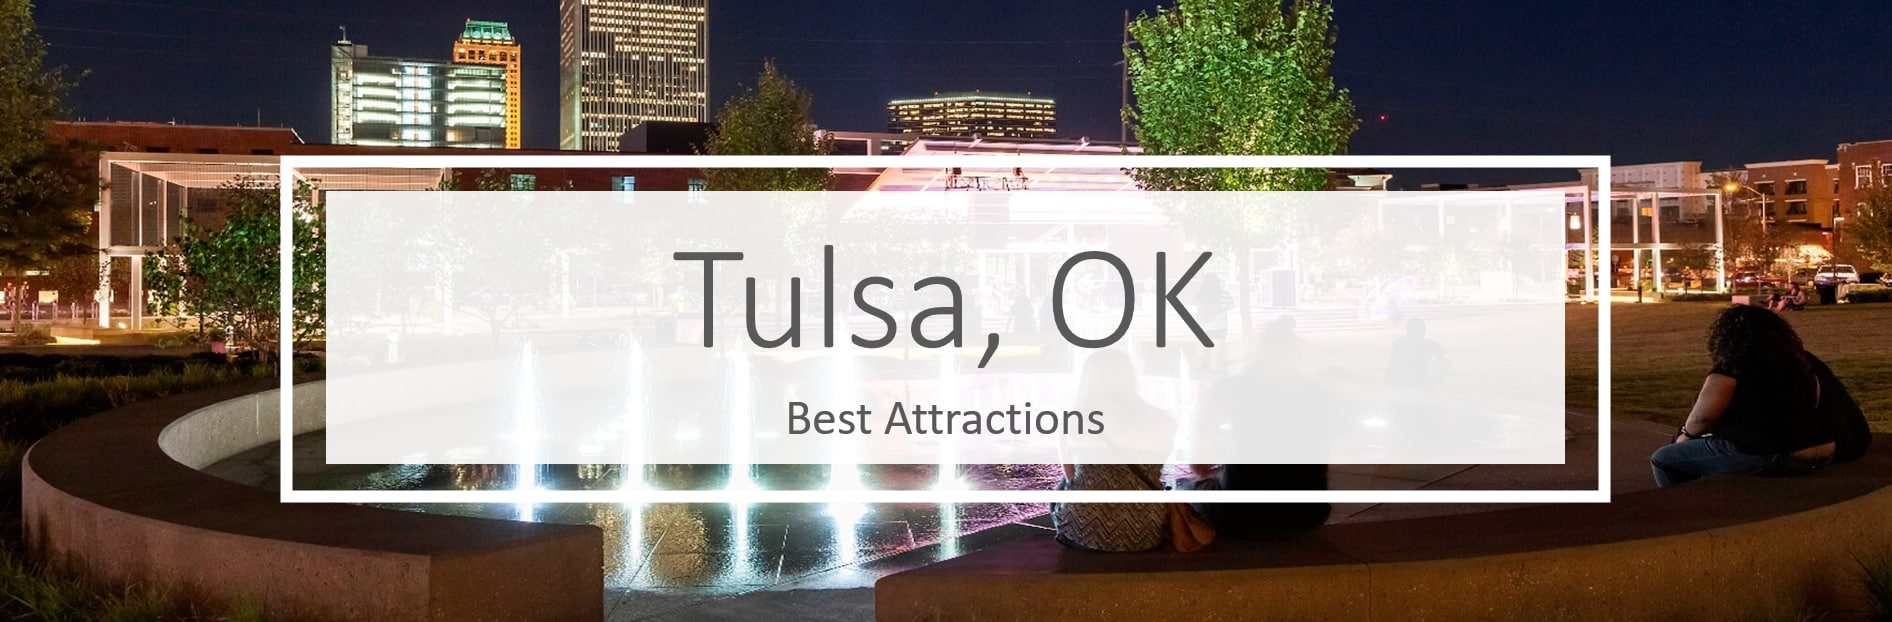 What attractions are in Tulsa, OK?